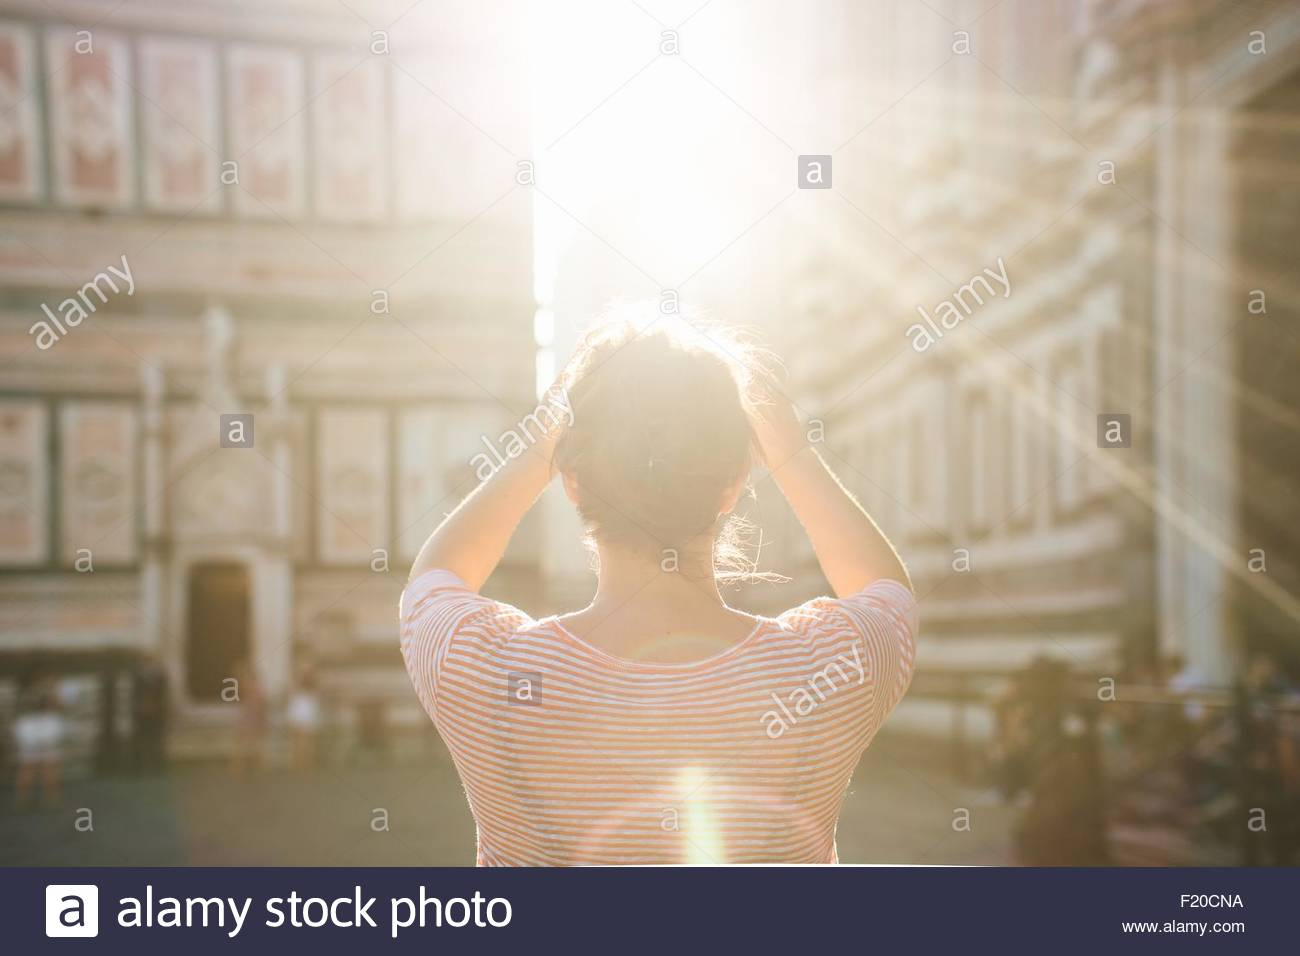 Rear view of mid adult woman, arms raised, lens flare, Duomo Cathedral, Florence, Italy - Stock Image